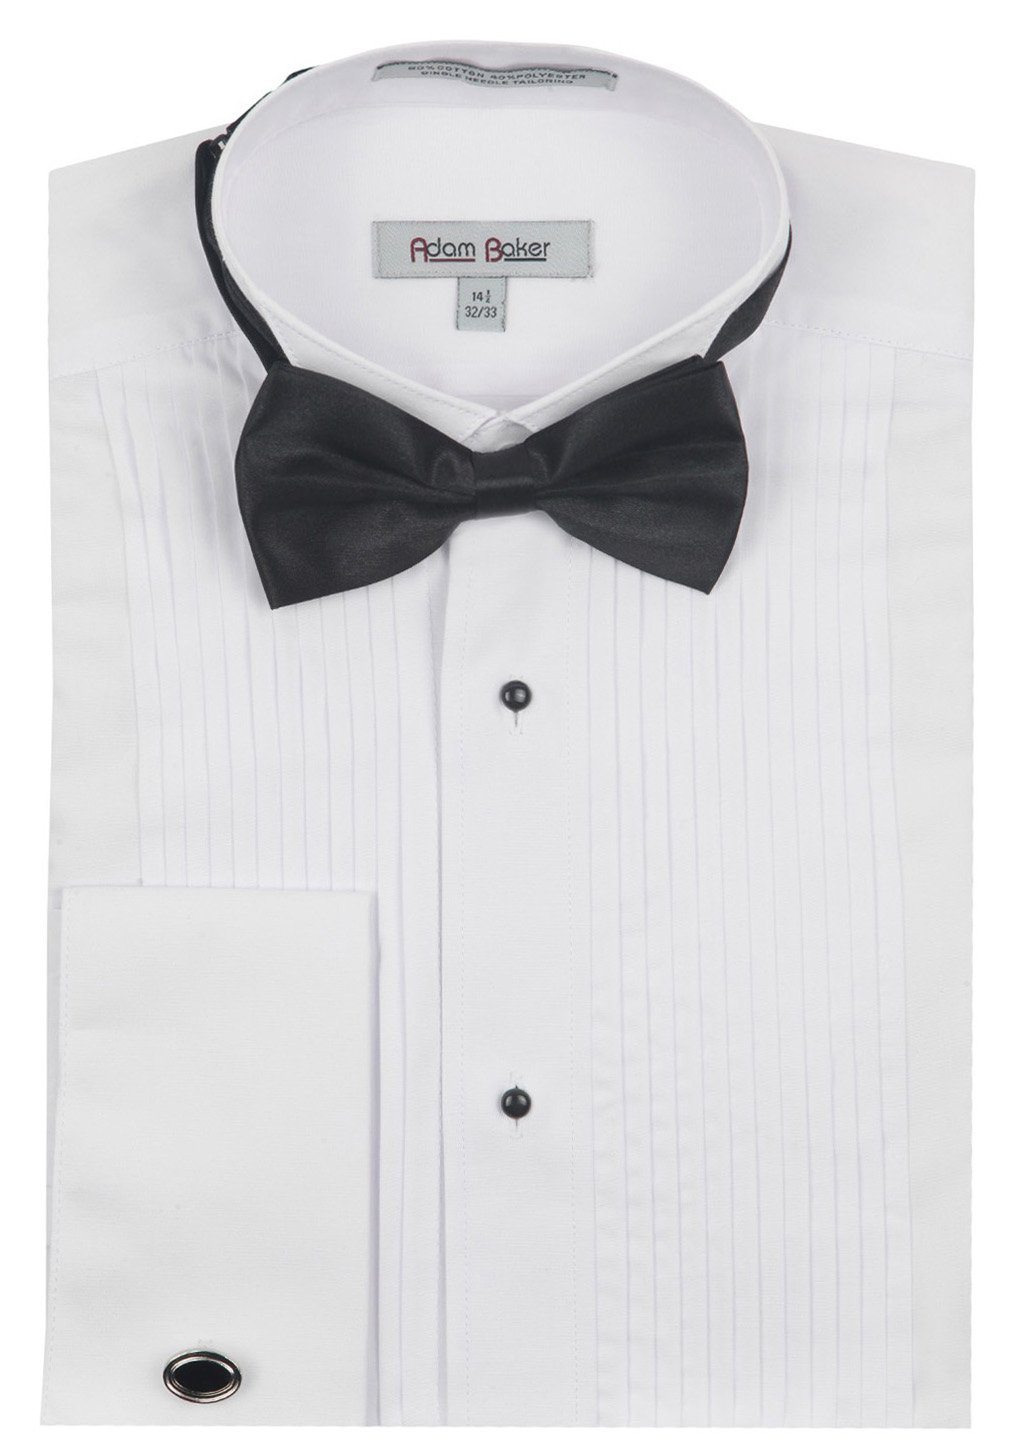 Adam Baker 1922 Men's Regular Fit Wingtip Collar French Cuff Tuxedo Shirt - White - 15.5 4-5 by Adam Baker